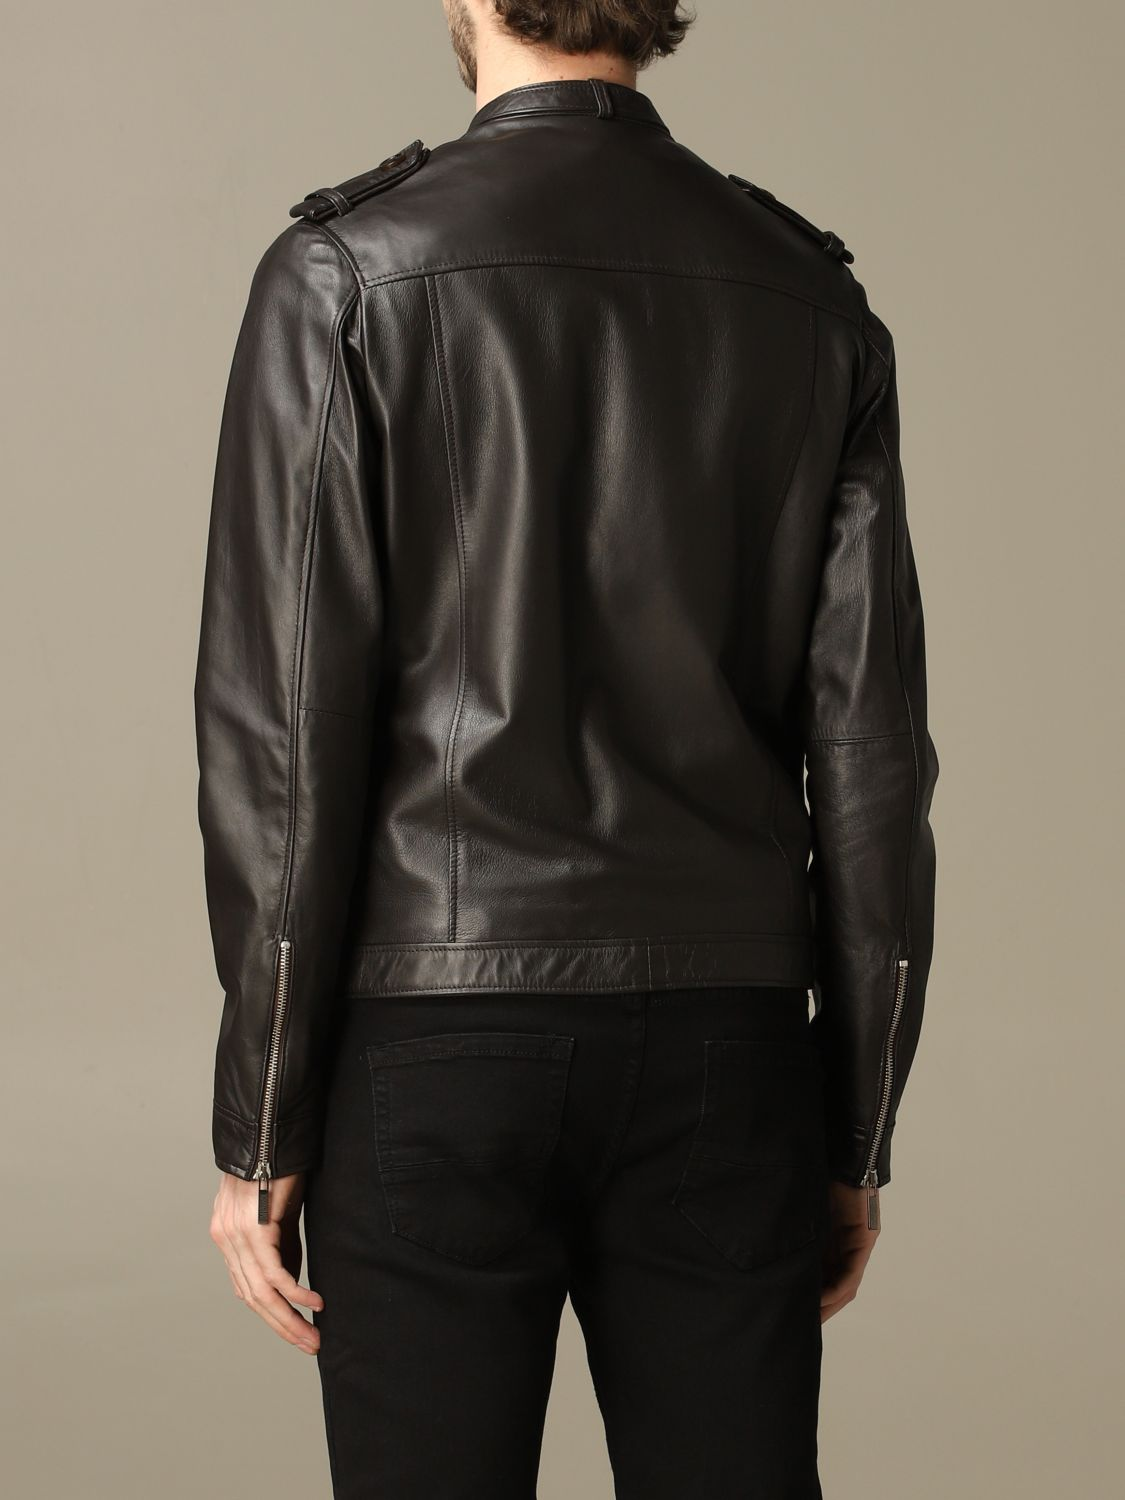 Jacket Alessandro Dell'acqua: Alessandro Dell'acqua leather jacket with zip brown 2